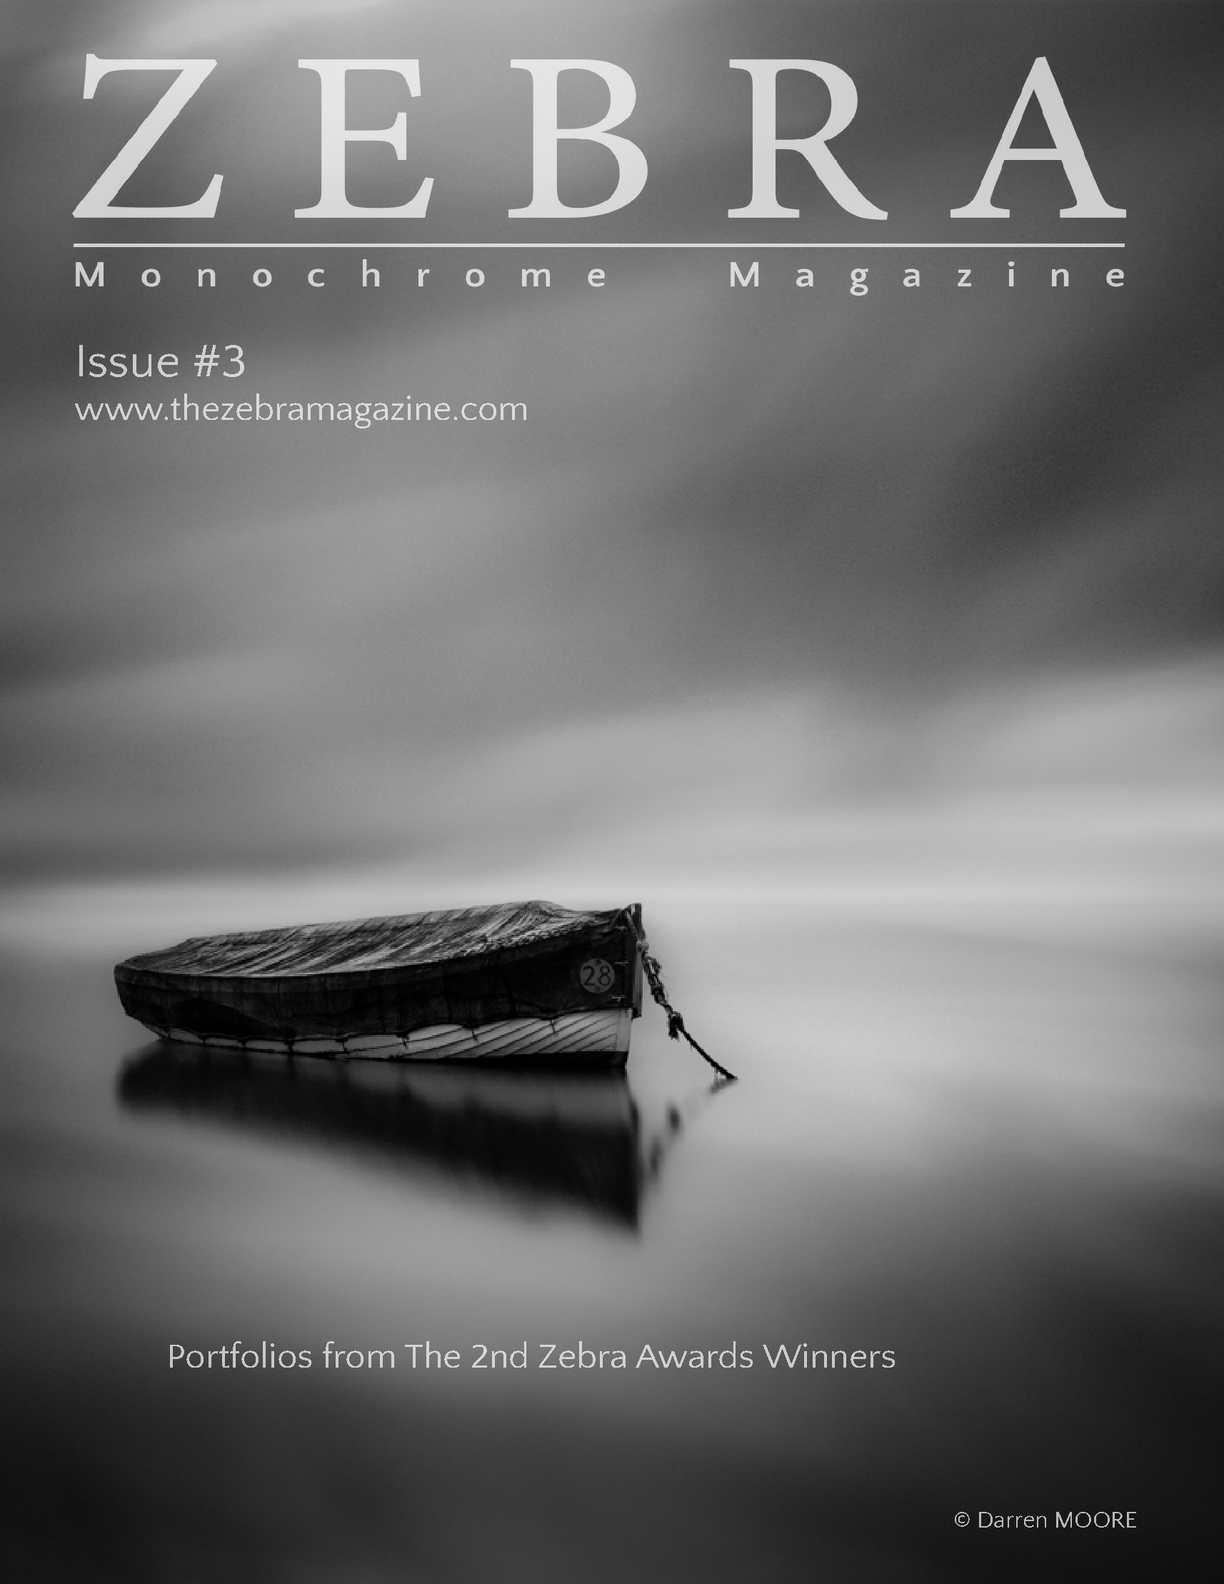 Zebra Magazine Issue #3b Lenovo Sep 10 081158 2015 Conflict